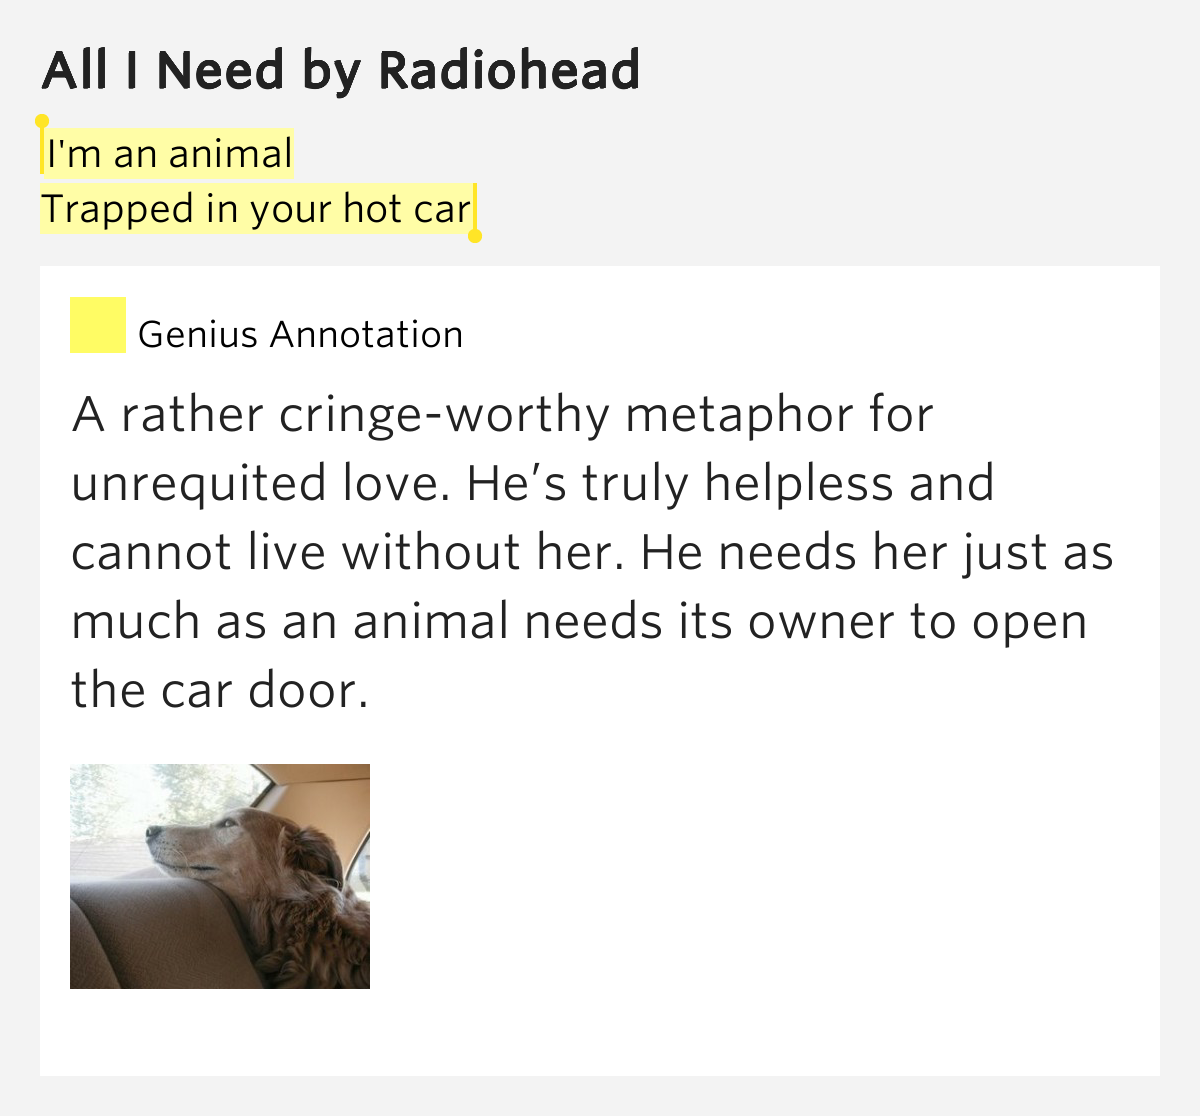 I'm An Animal / Trapped In Your Hot Car